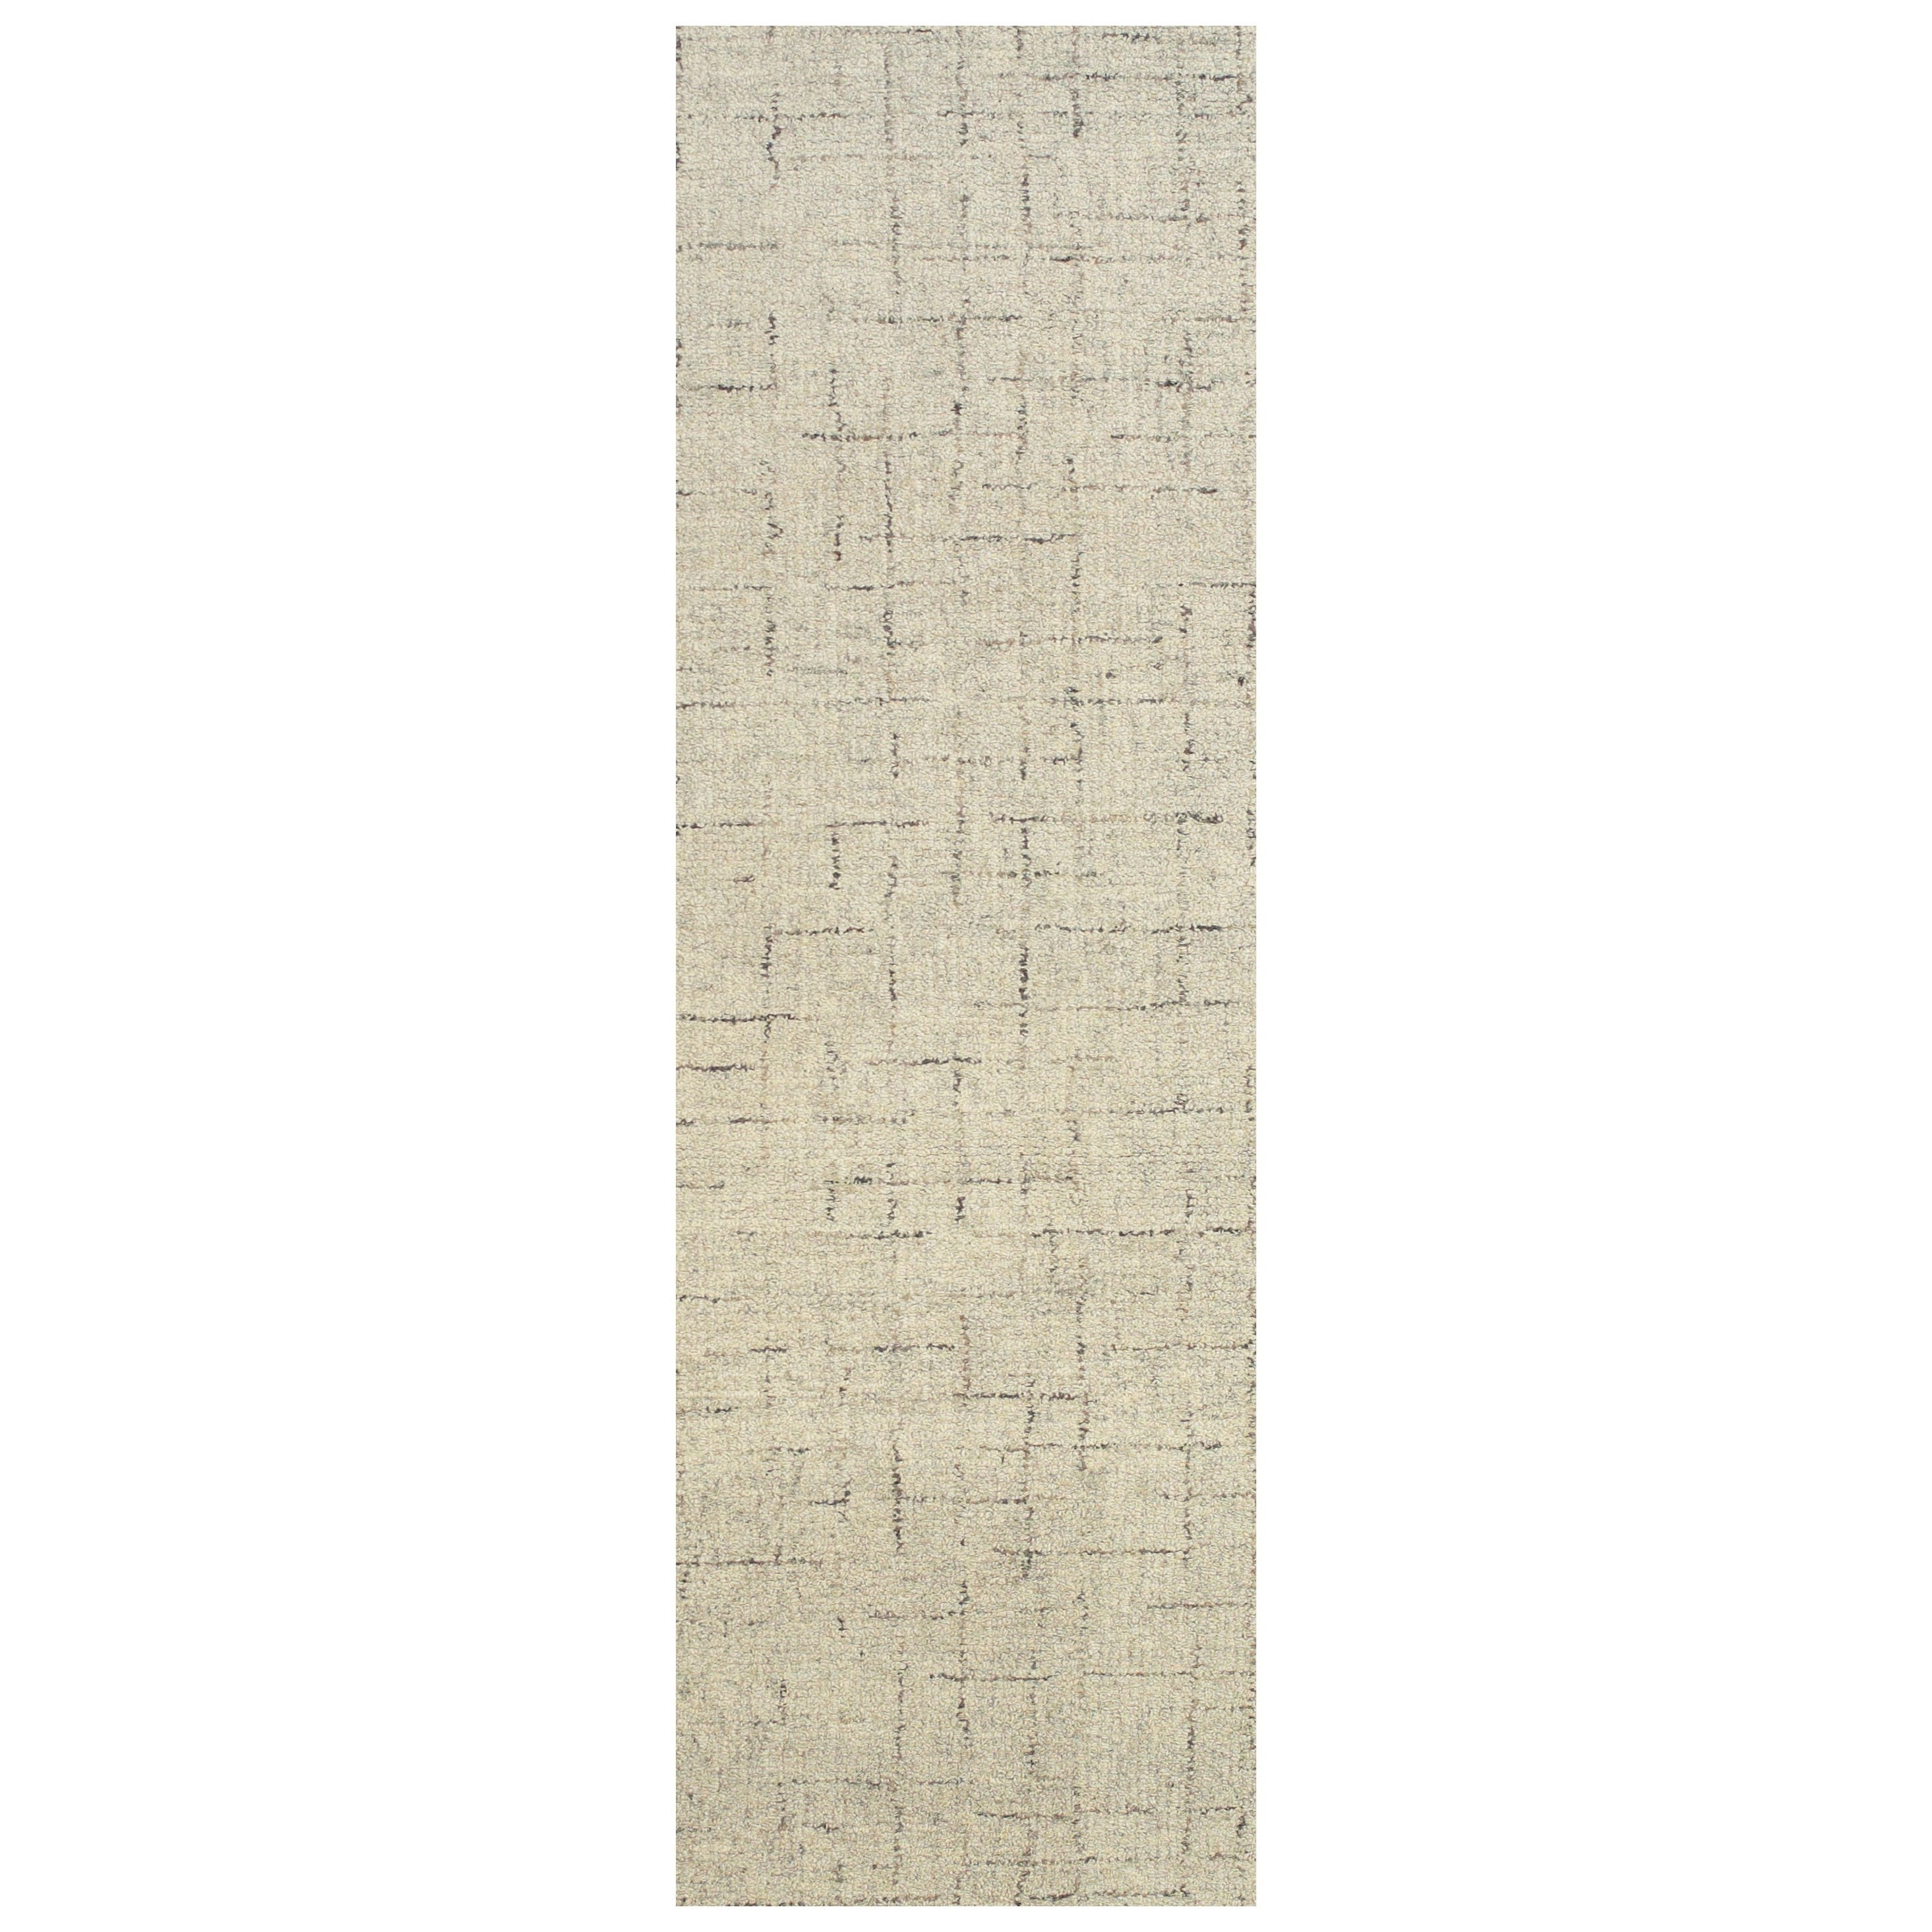 """Morisco Oatmeal 2'-6"""" x 8' Runner Rug by Feizy Rugs at Sprintz Furniture"""